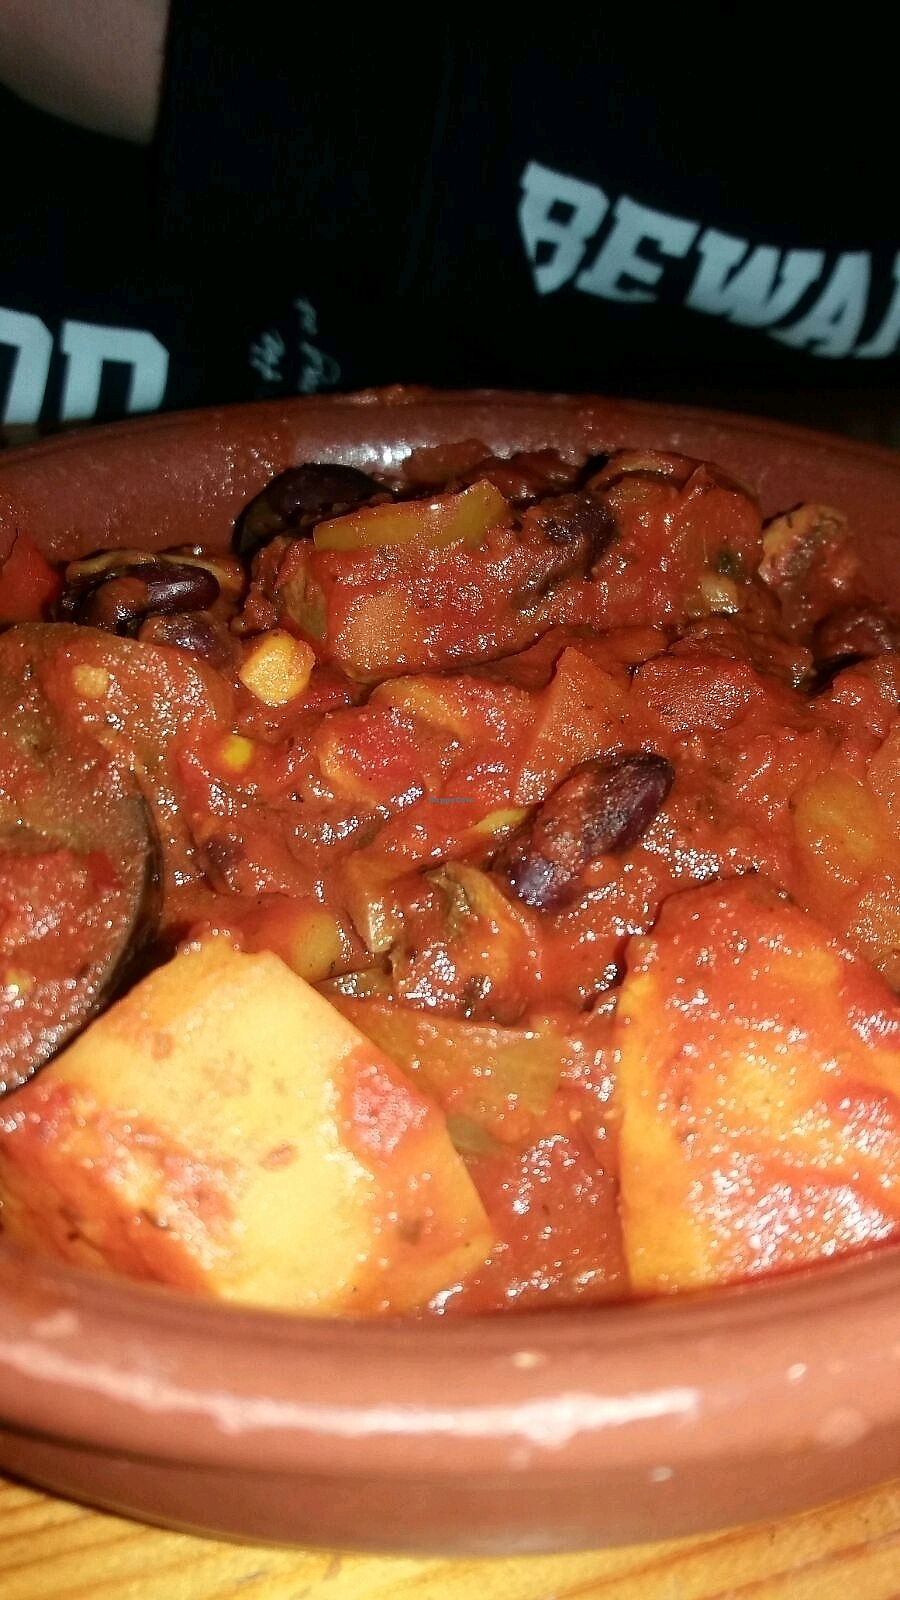 """Photo of Tapas Tree  by <a href=""""/members/profile/sgacton"""">sgacton</a> <br/>veg chilli <br/> February 4, 2018  - <a href='/contact/abuse/image/111166/354723'>Report</a>"""